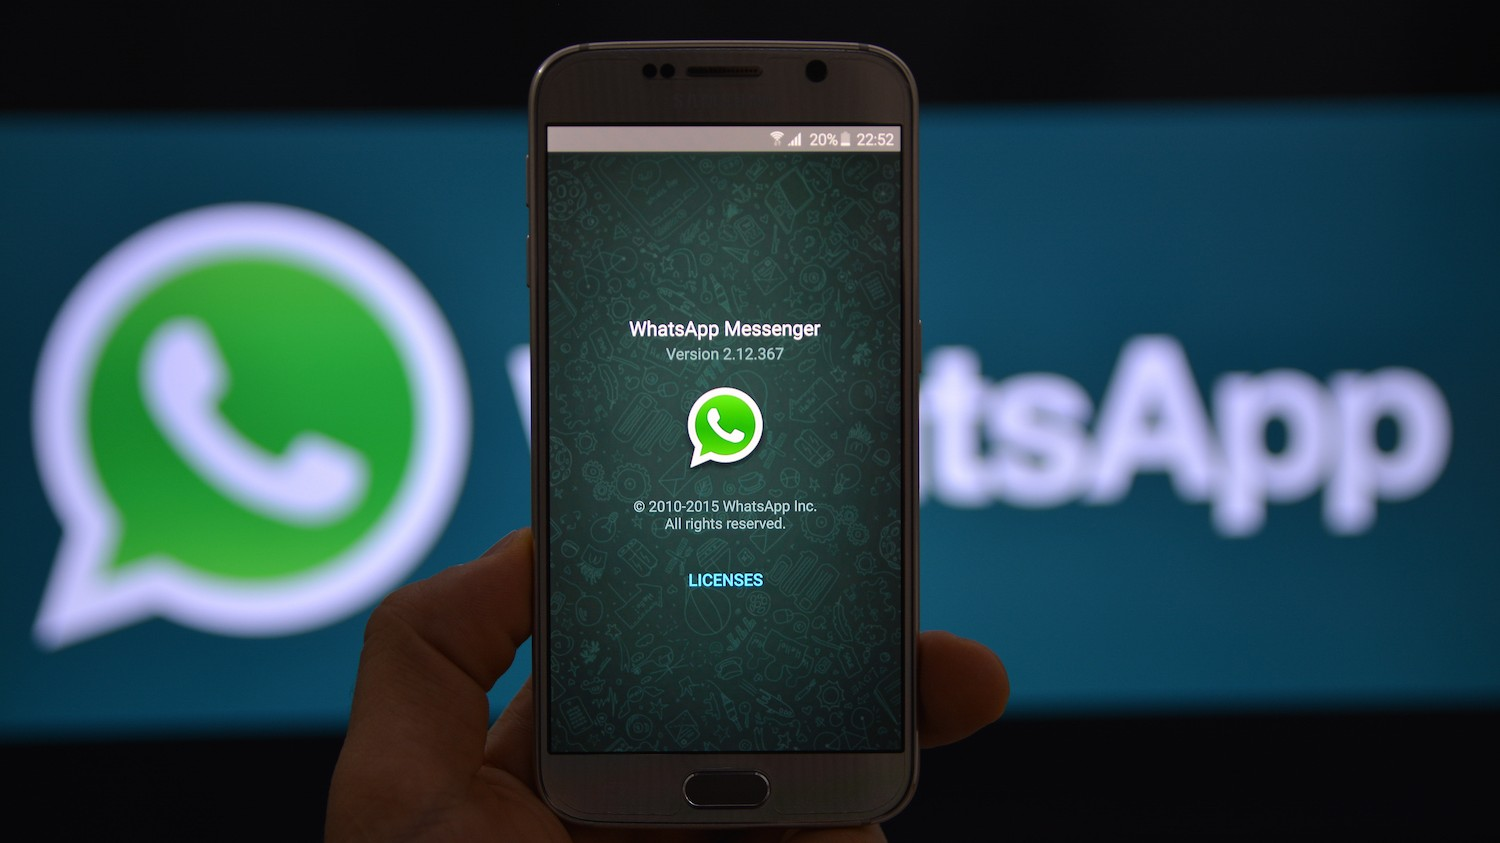 Crypto Experts Say Discussed WhatsApp Feature Is Not a Backdoor